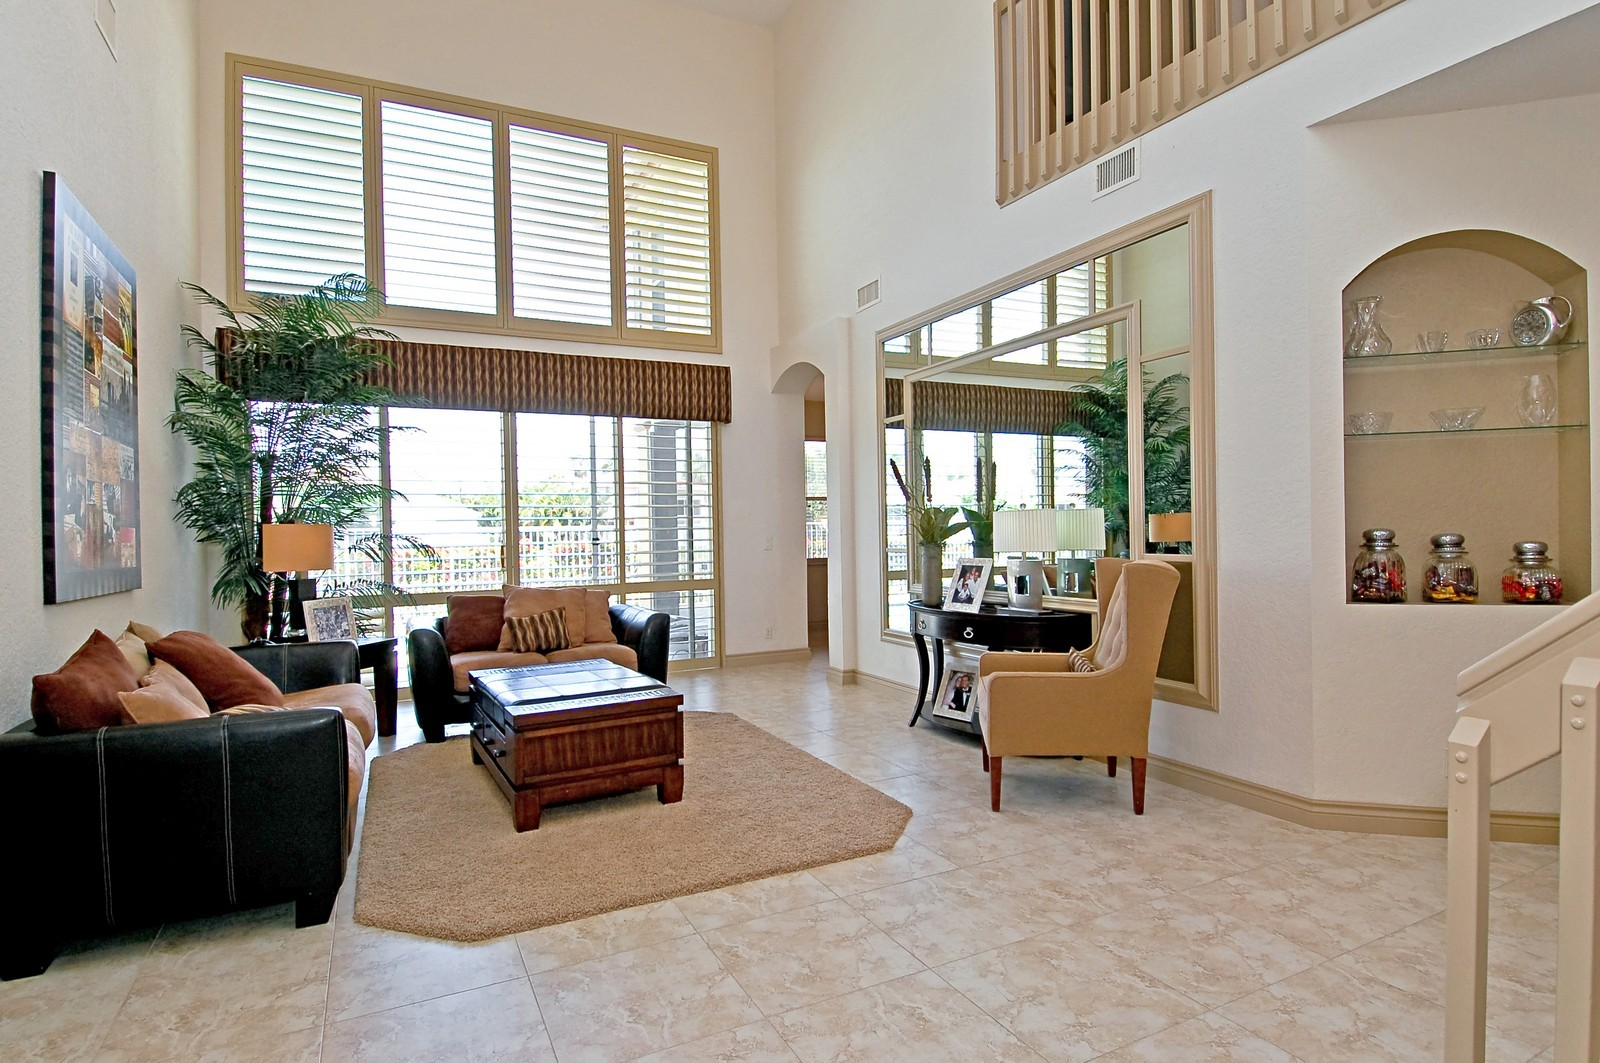 Real Estate Photography - 11308 Sea Grass Cir, Boca Raton, FL, 33498 - Living Room